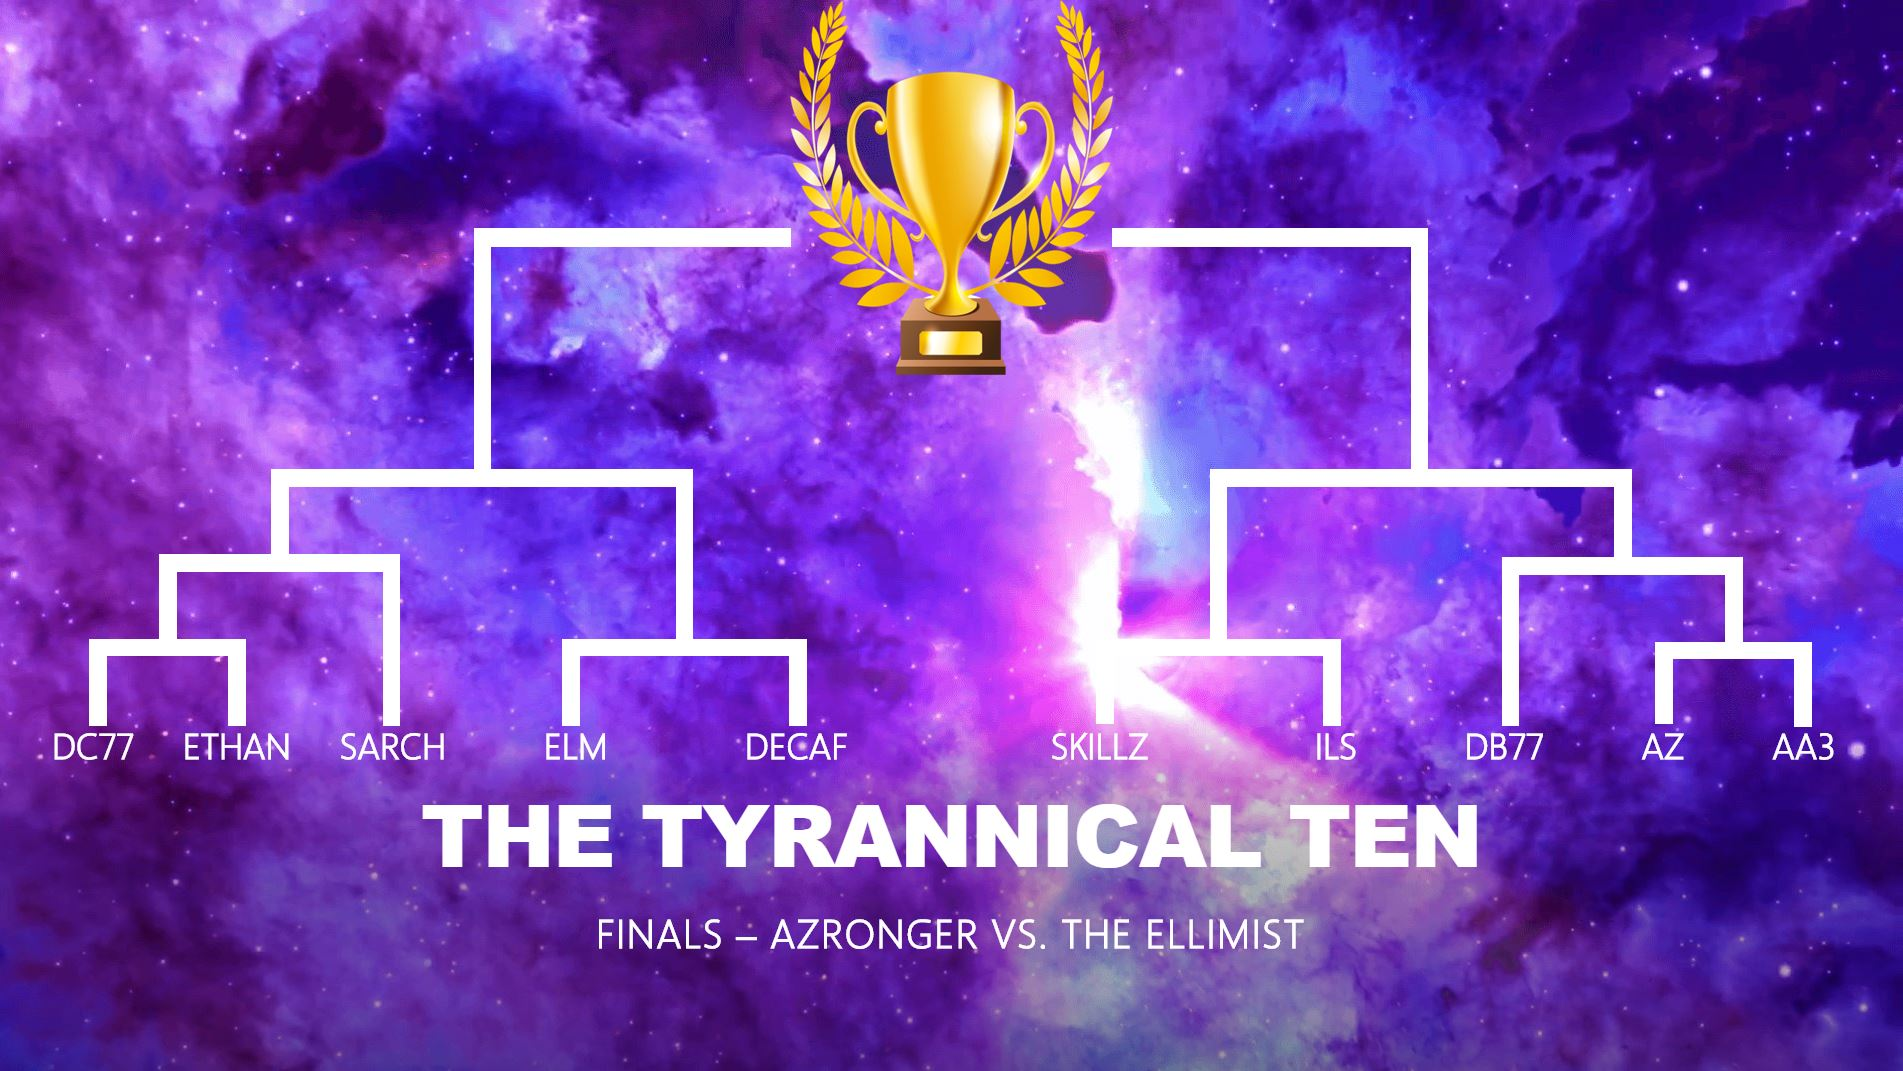 SS - The Tyrannical Ten - Darth Plagueis (The Ellimist) vs. Valkorion (Azronger) Title_card